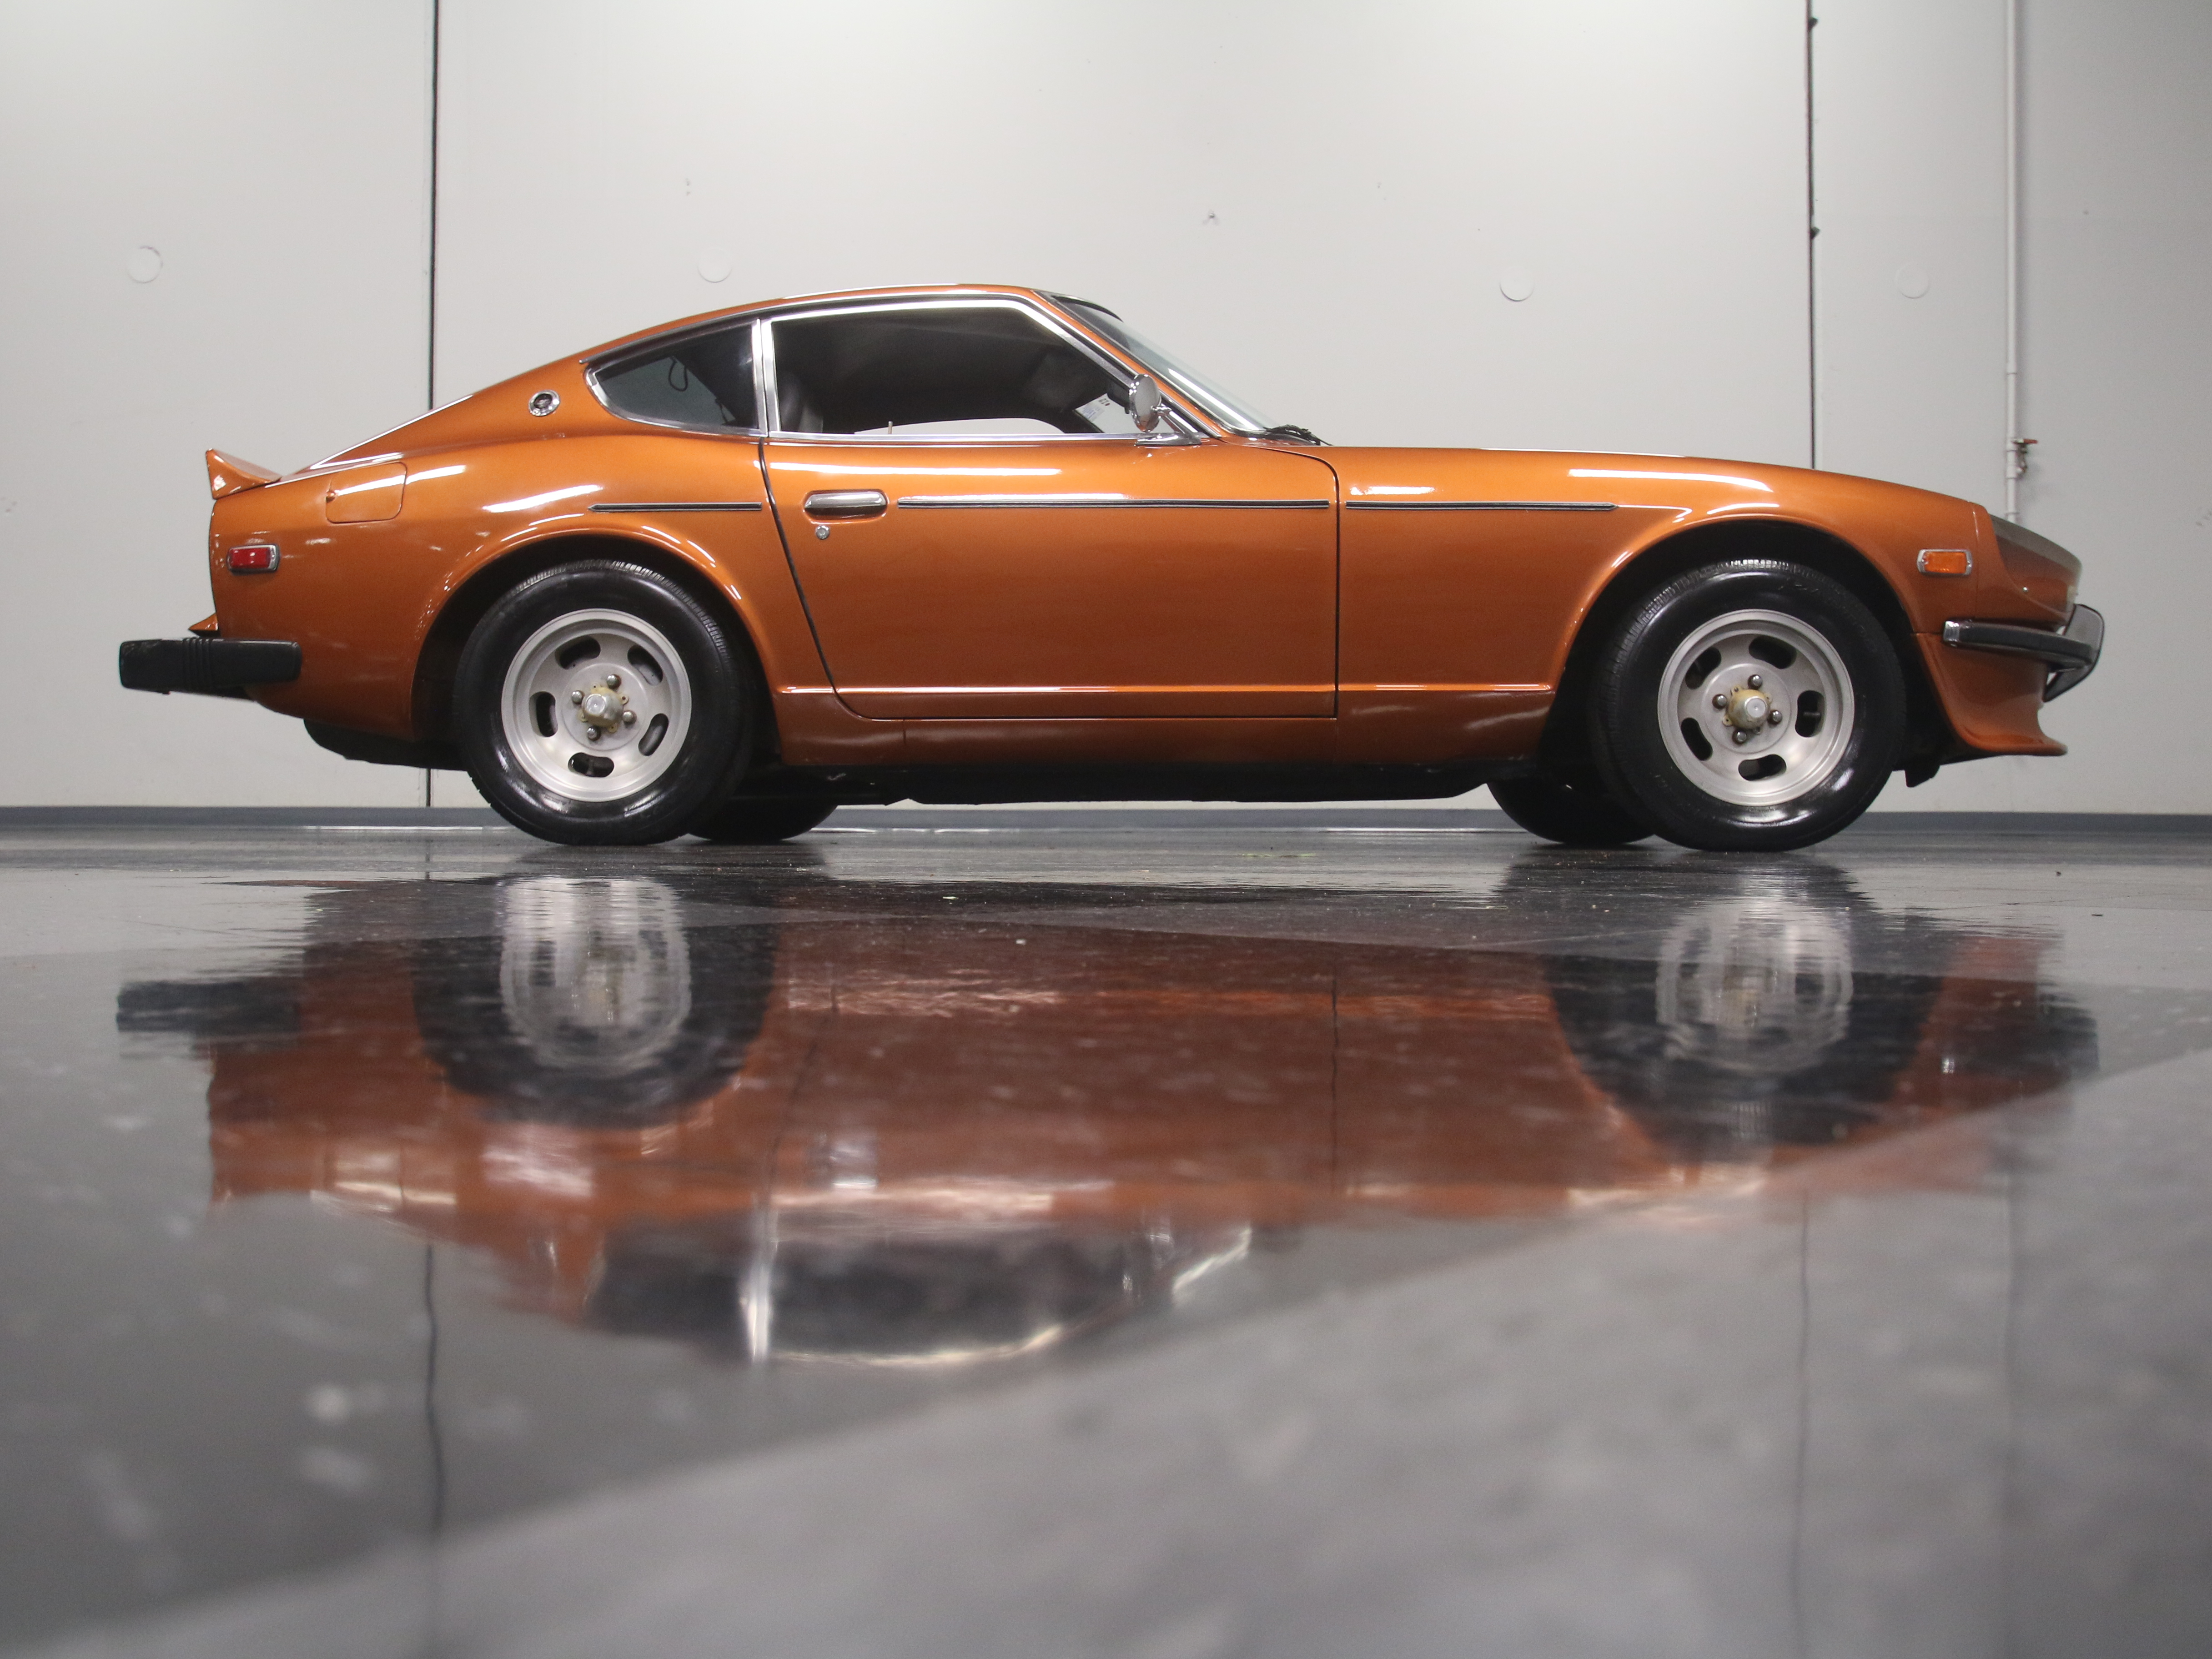 1977 Datsun Z-Series : SAME OWNER SINCE '79, WELL-MAINTAINED, ONE RESPRAY, REBUILT 2.8L I6, 5-SPEED, AC